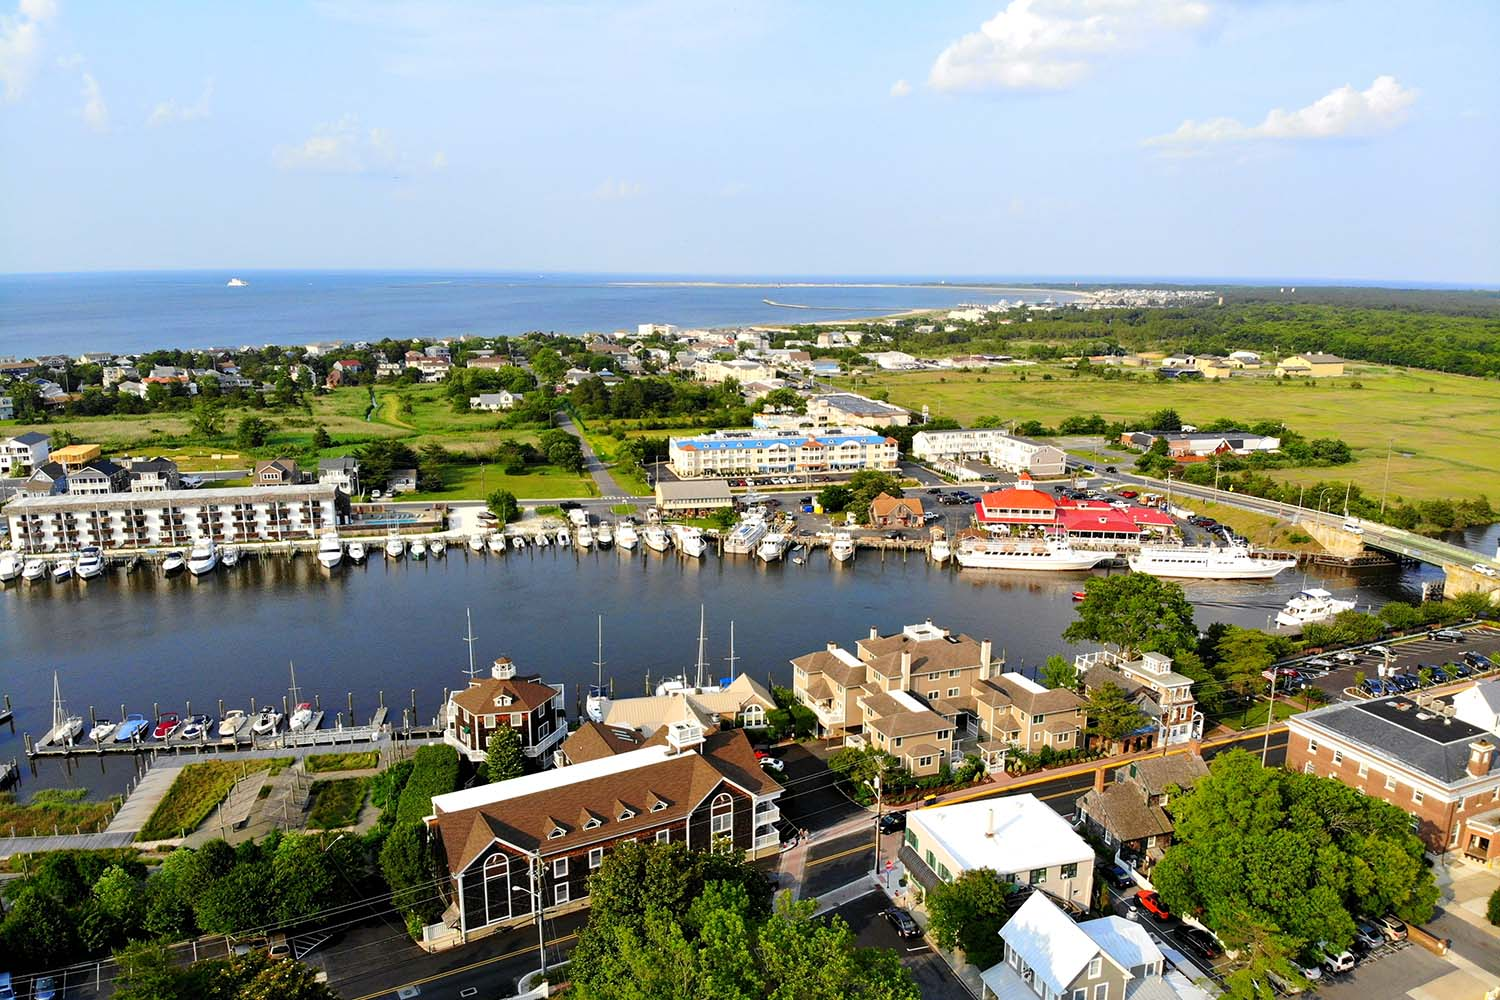 Aerial view of Lewes, Delaware, USA